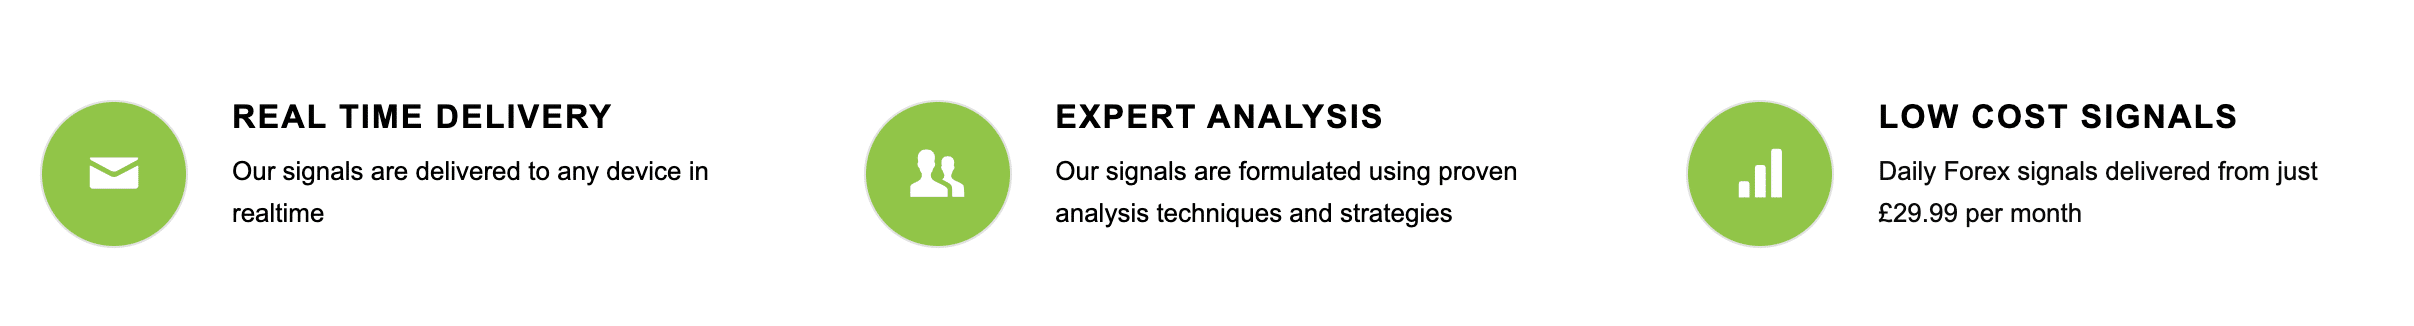 daily forex trading signals